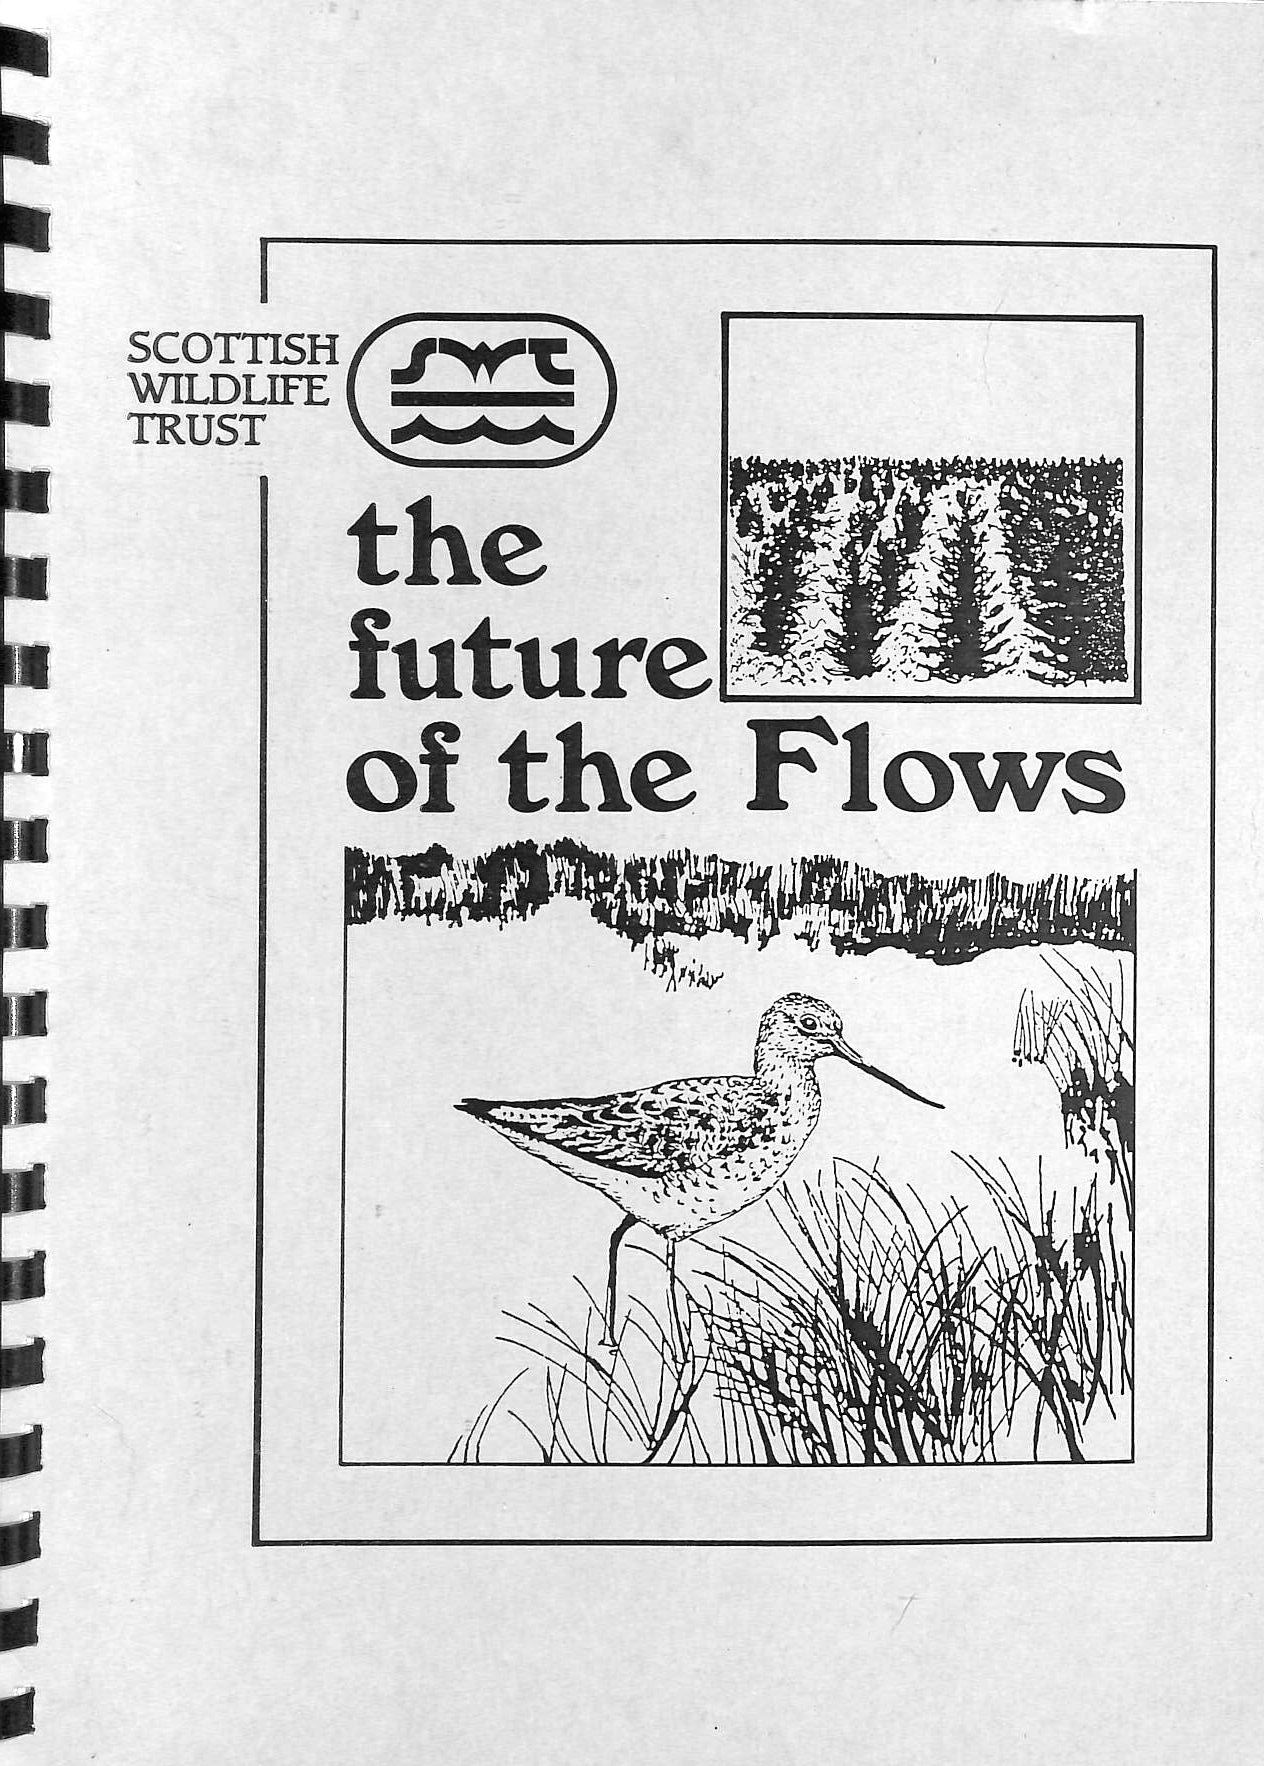 Image for The Future of the Flows: a special report on afforestation and conservation in the peatlands of East Sutherland and Caithness